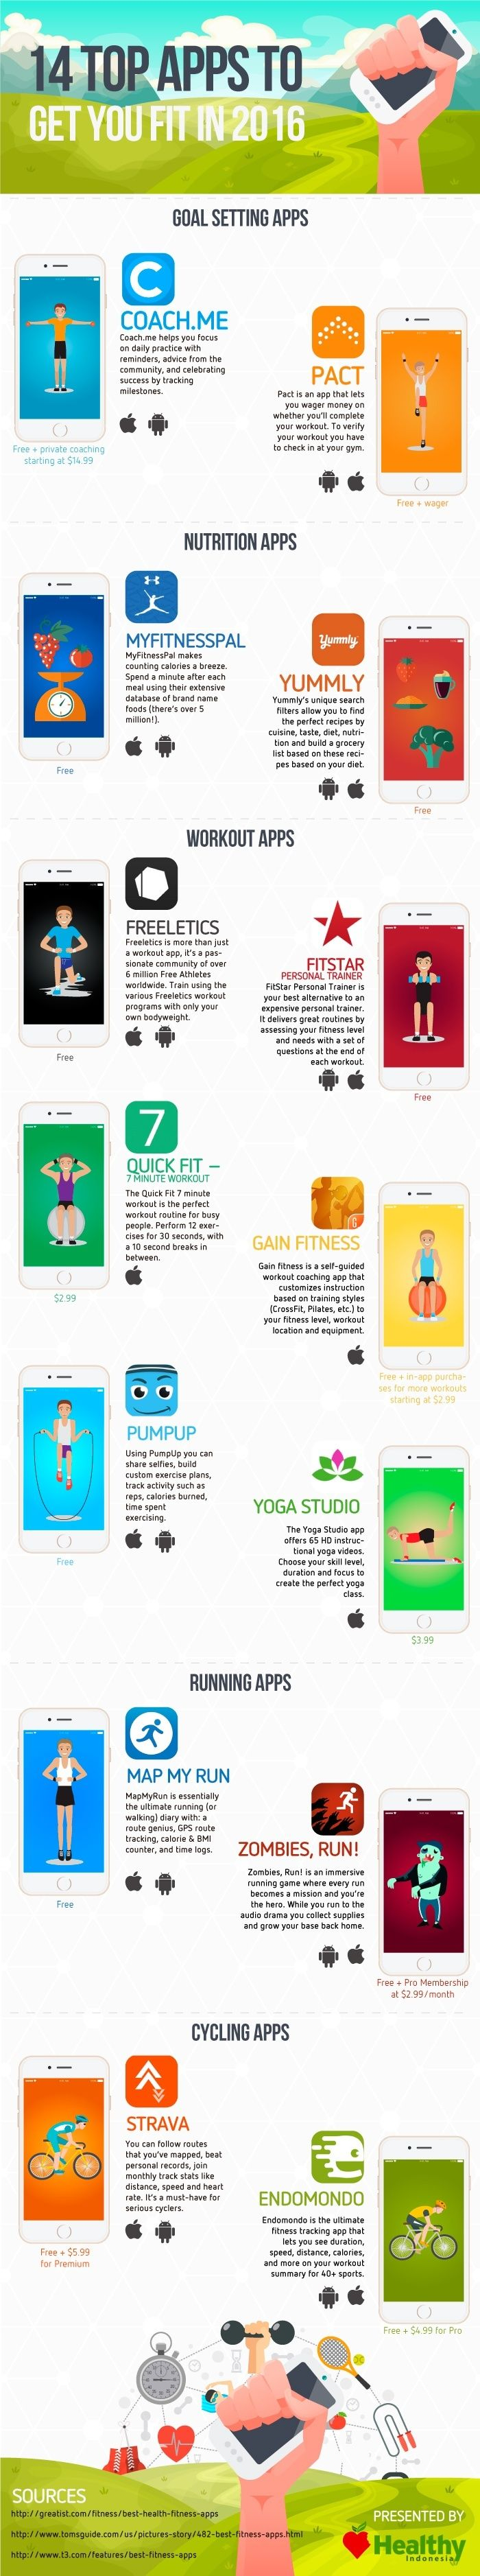 14 Top Apps Yo Get You Fit in 2016 #infographic #infografía